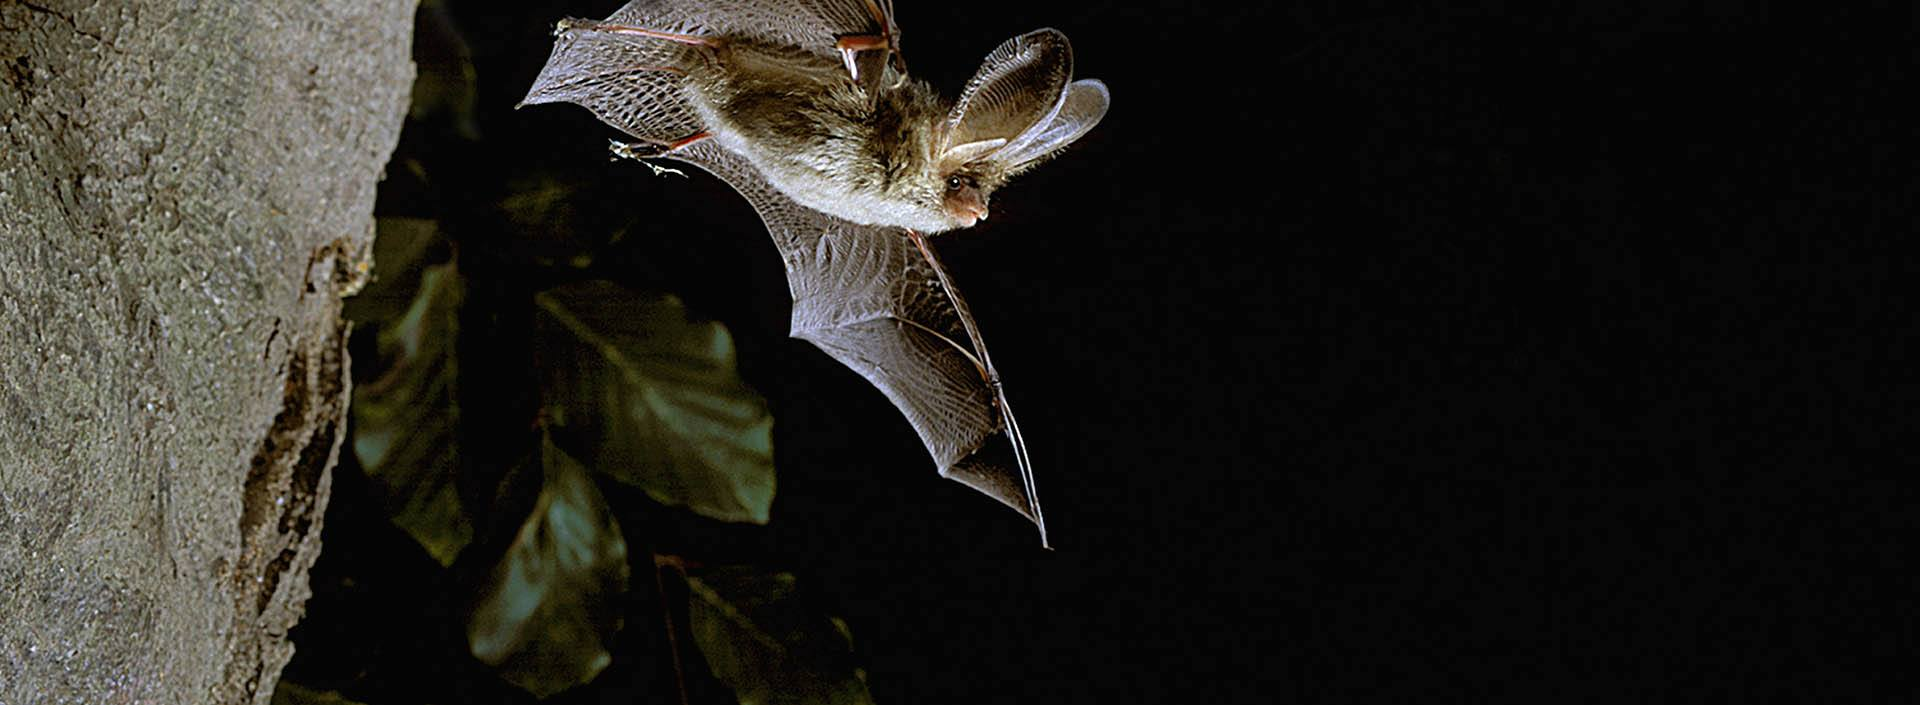 Slide 5 - Bat in flight - National bat monitoring programme recording website and database